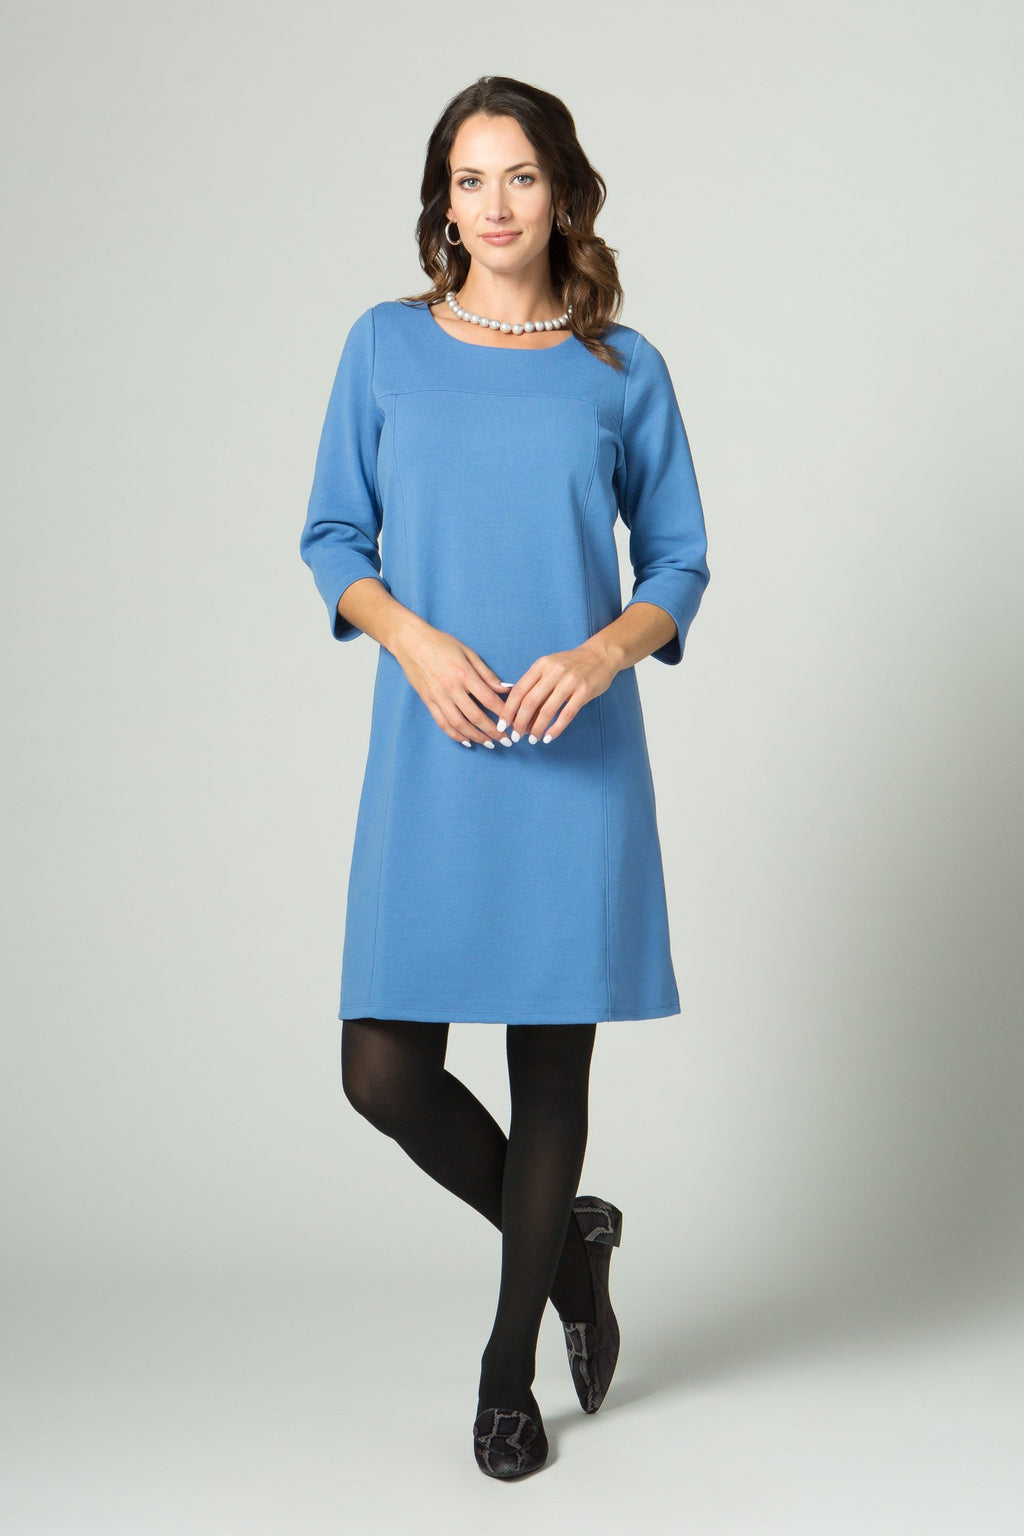 3/4 Sleeve Dress with Seam Detailing - New Orleans Knitwear - Dresses - Casual